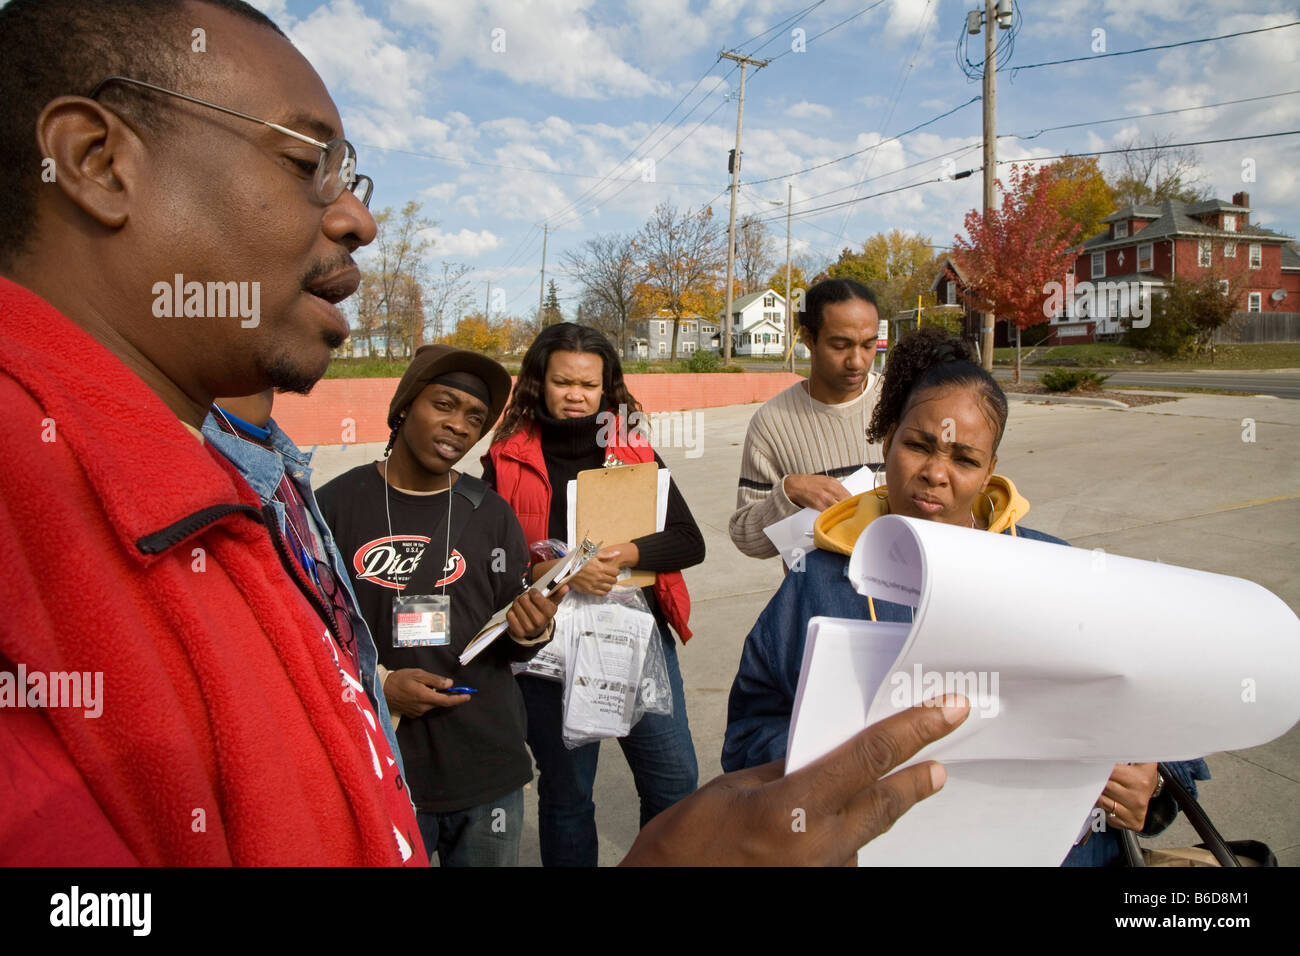 Organizers Prepare to Canvass Neighborhood Before Election - Stock Image